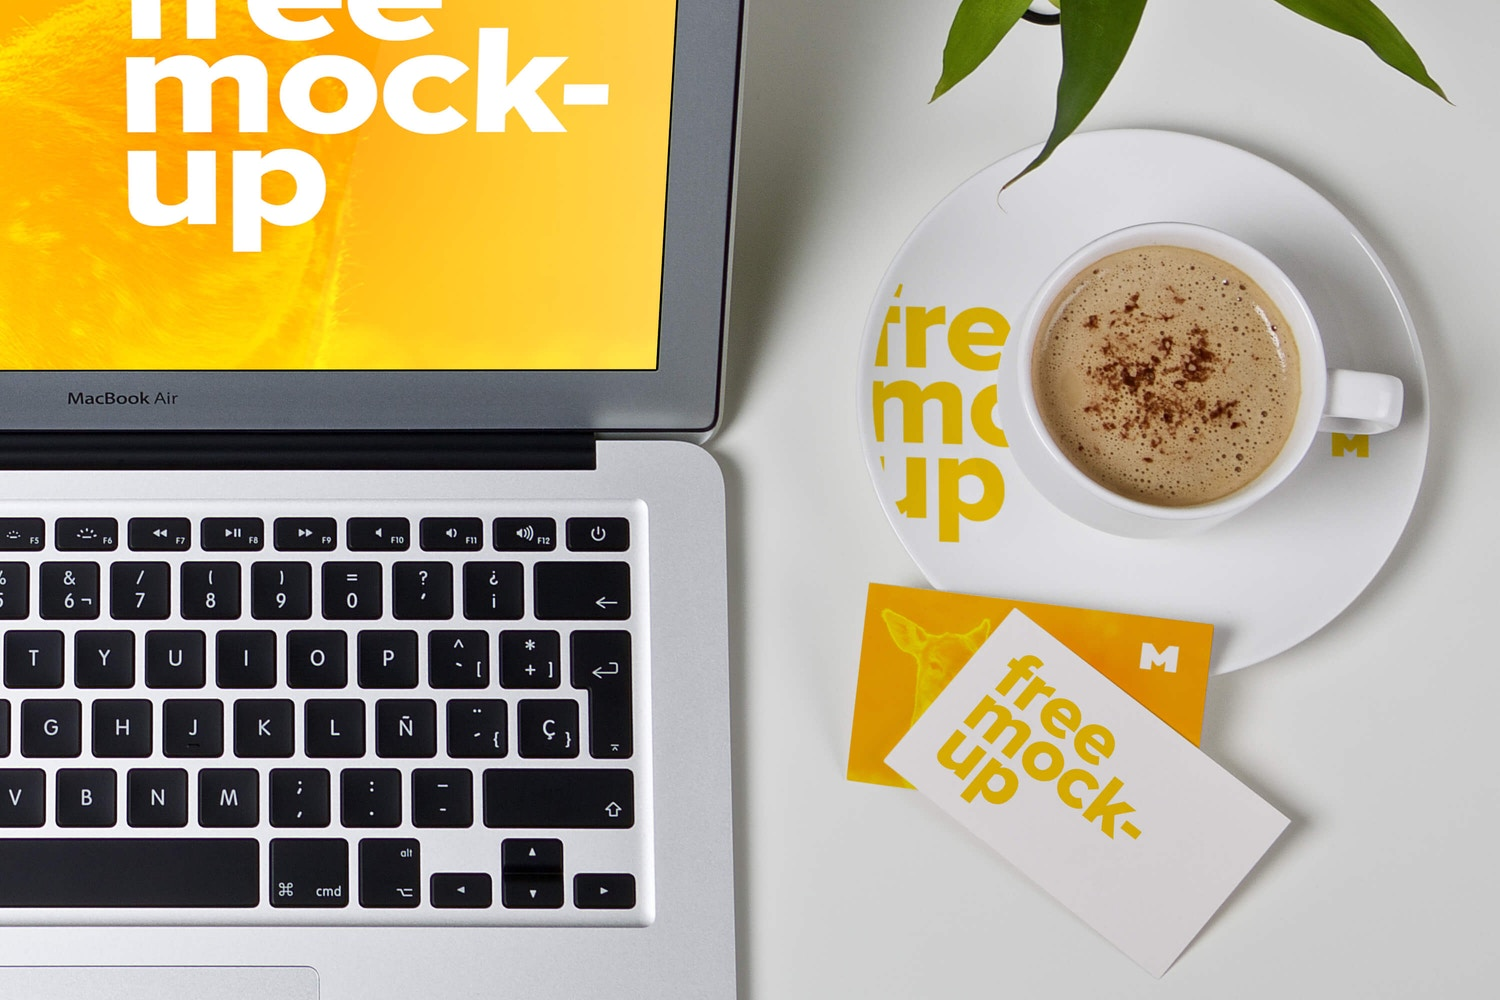 Workspace Mockup 01 (5) by Ktyellow  on Original Mockups